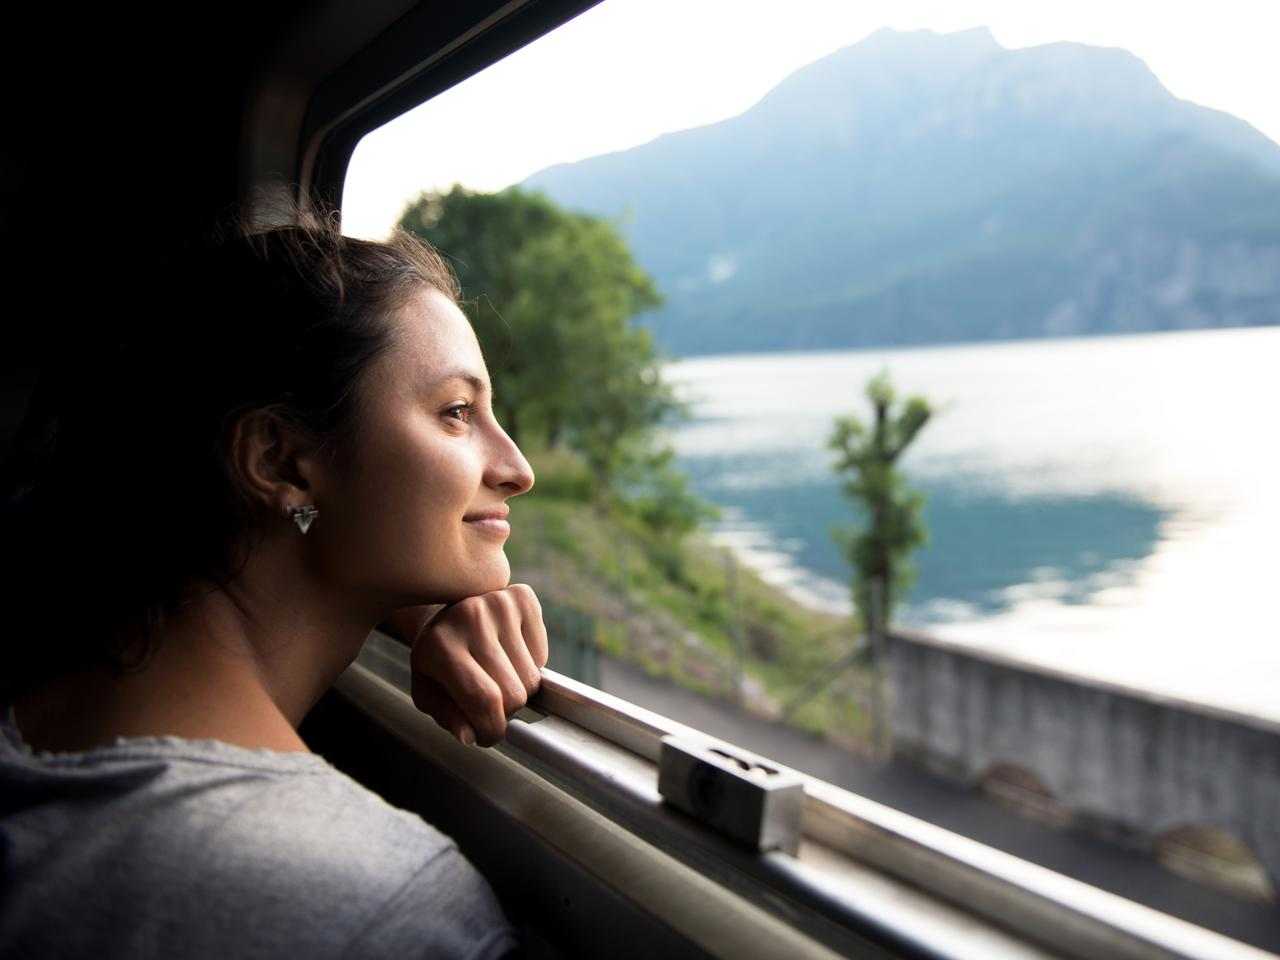 Smiling woman looking at the view from train